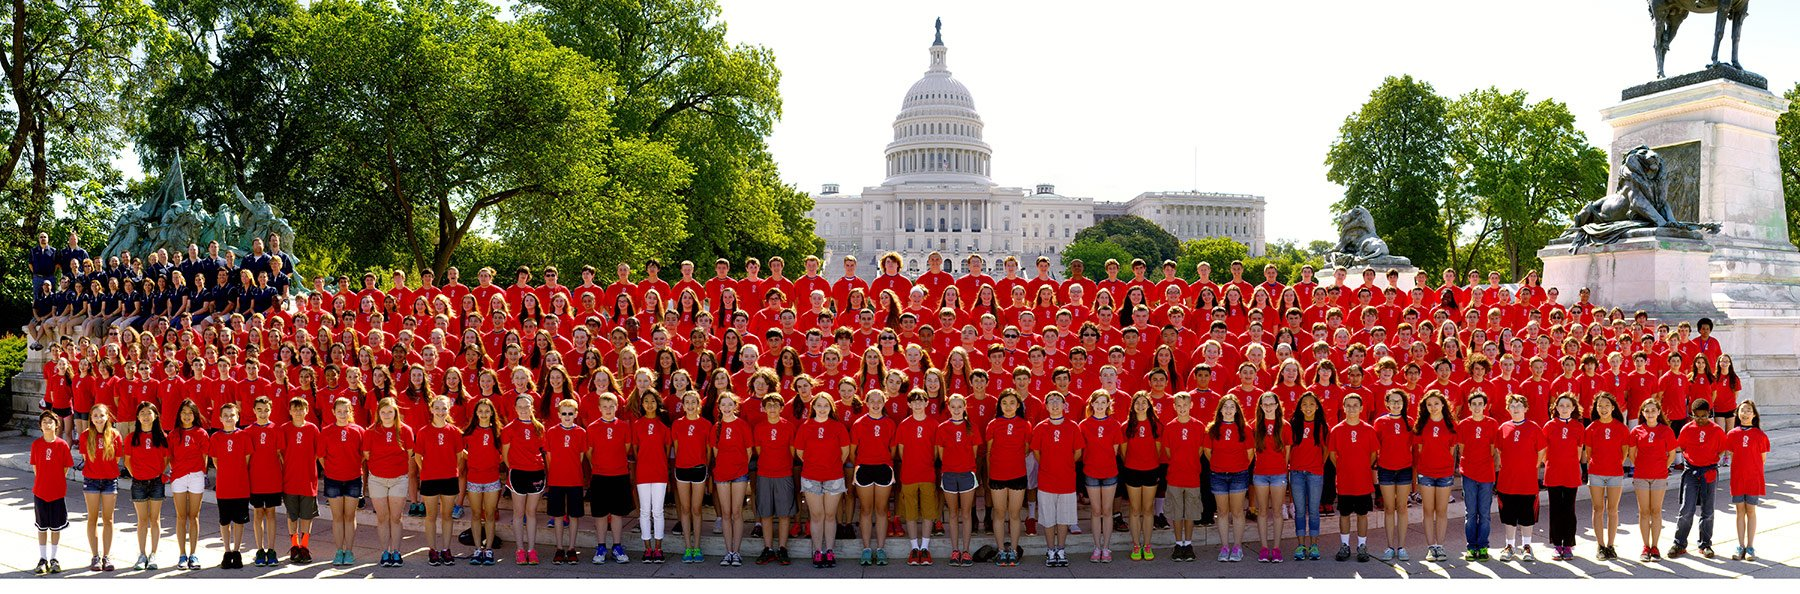 Large tour group all in red shirts taking a group photo outside of the capitol building